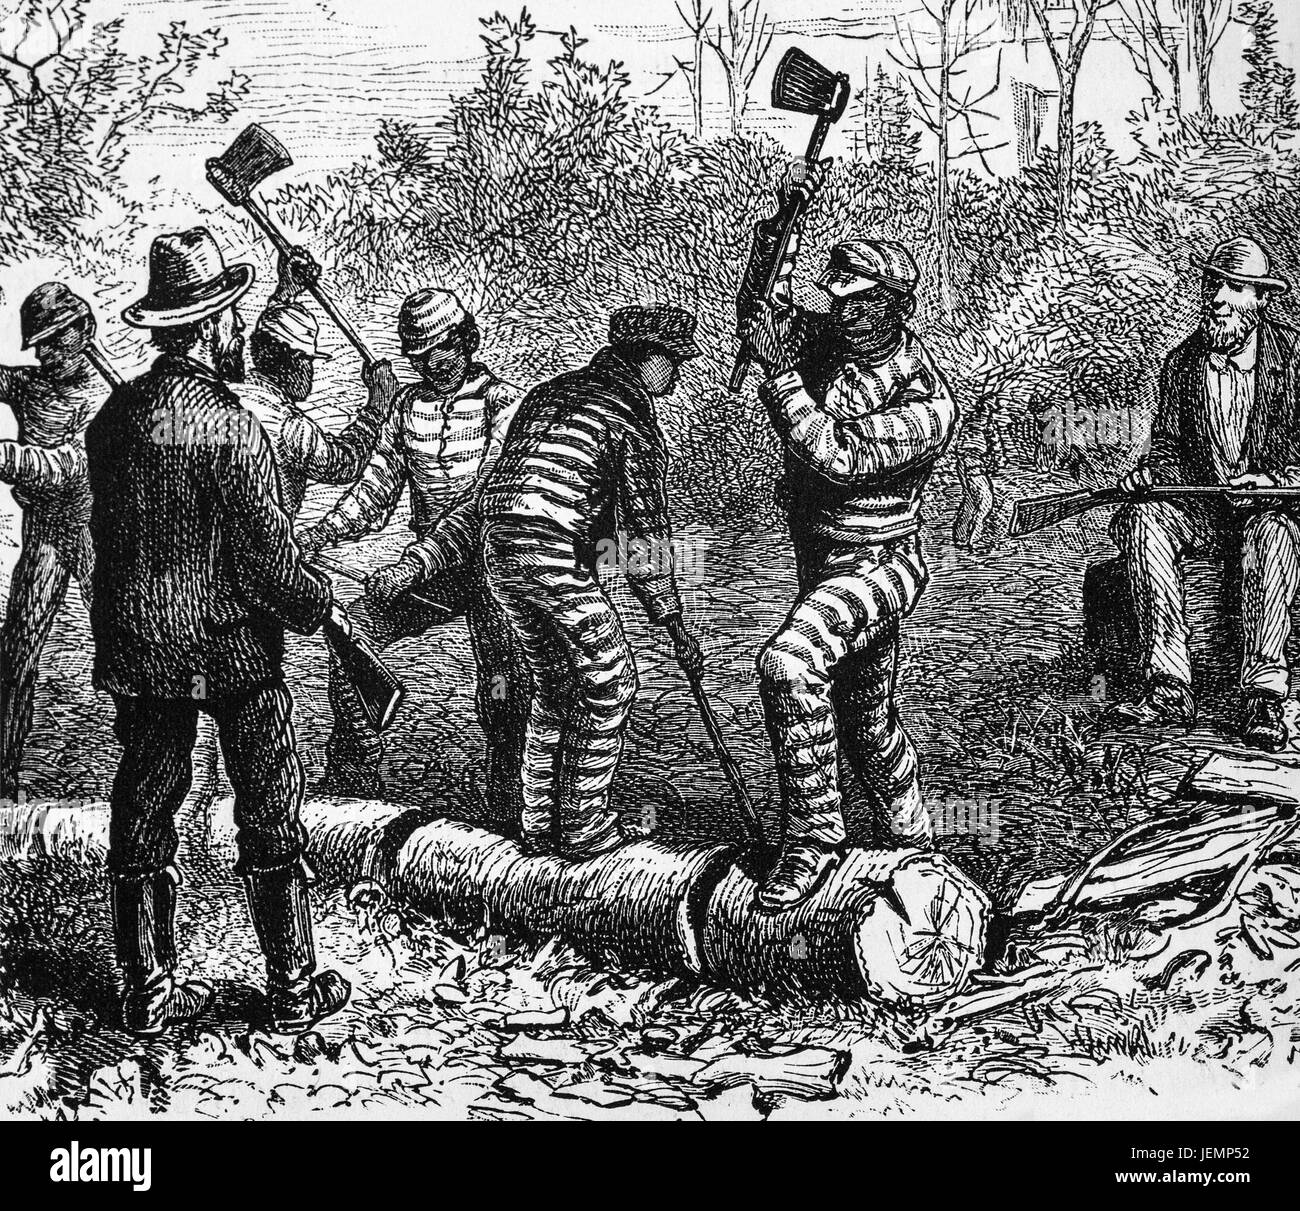 1879: Convicts from Richmond Penitentiary working in the forests, Virginia, United States of America - Stock Image